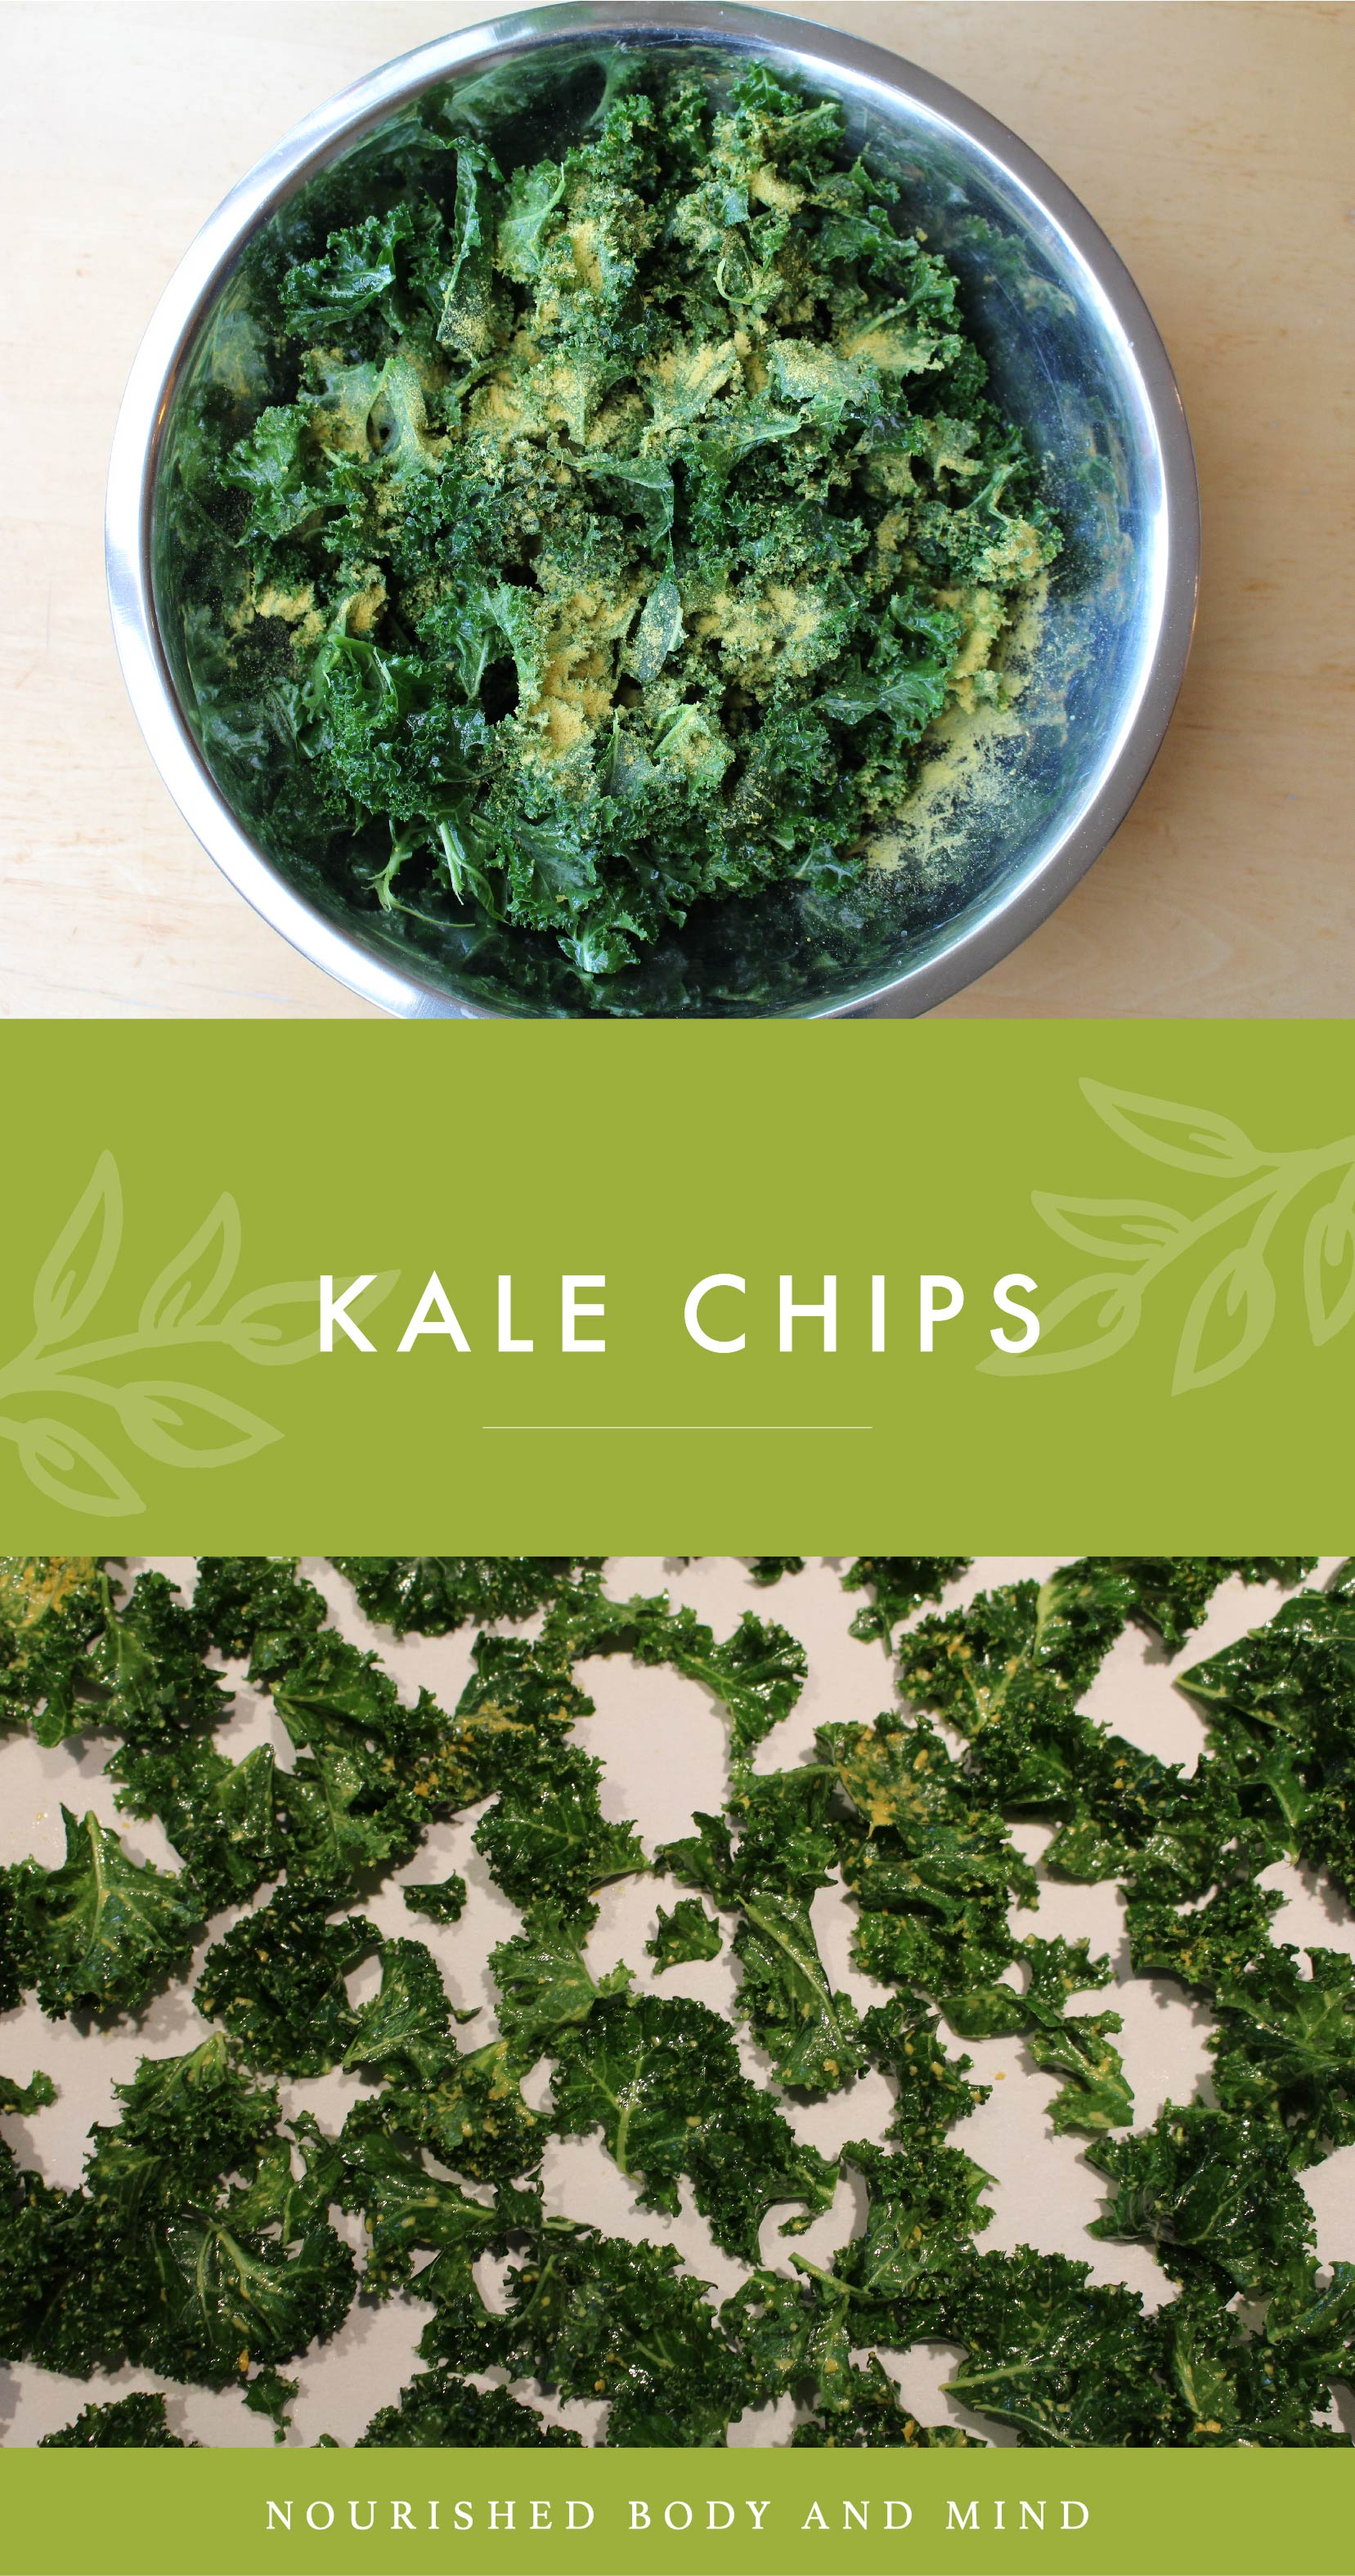 Kale Chips_Nourished Body and Mind - Joanne Schneider